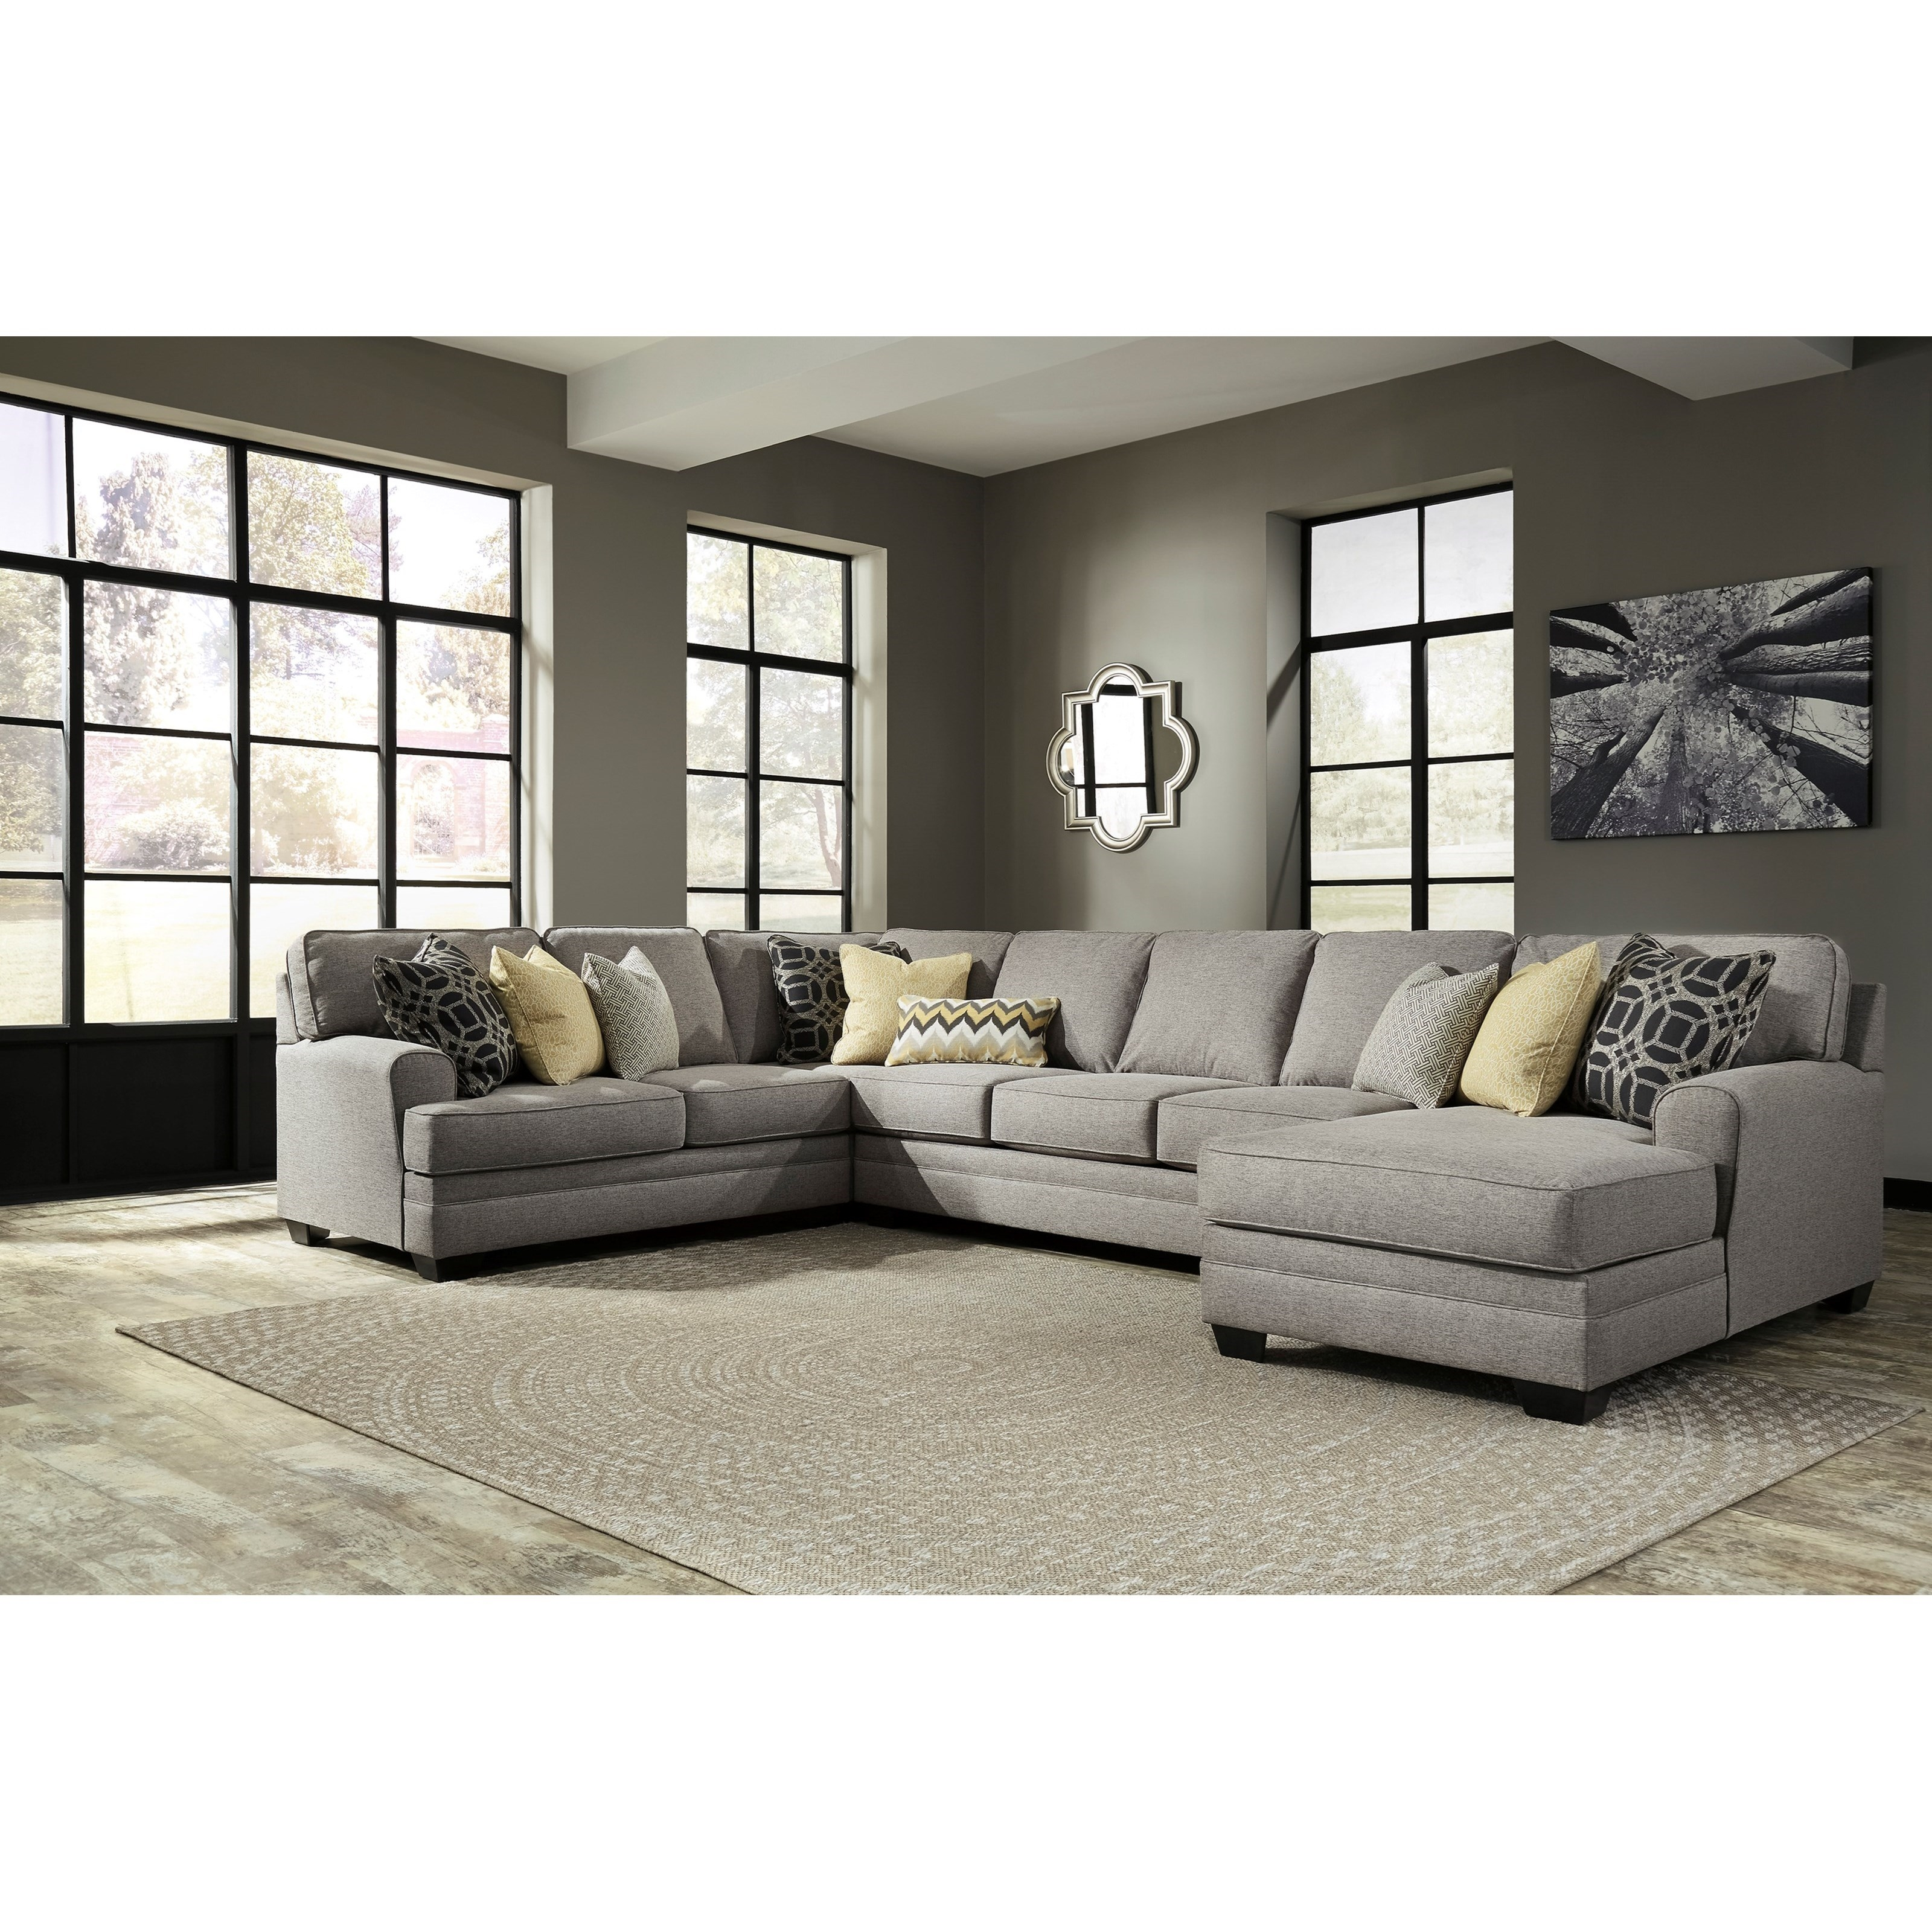 Benchcraft Cresson 4 Piece Sectional With Chaise Armless Sofa Intended For Armless Sectional Sofas (Image 6 of 15)